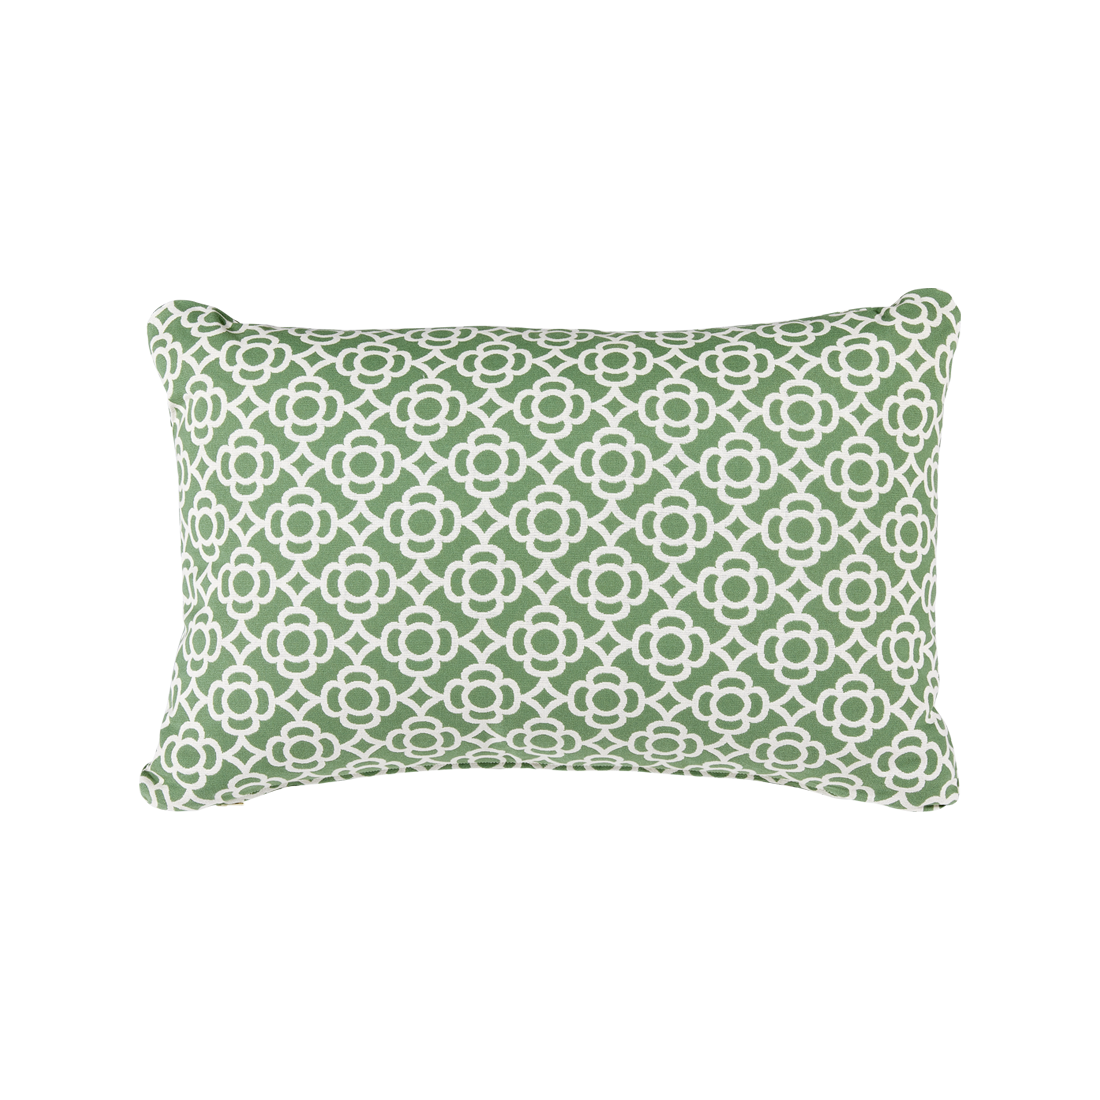 LORETTE / 2713 OUTDOOR CUSHION 68*44